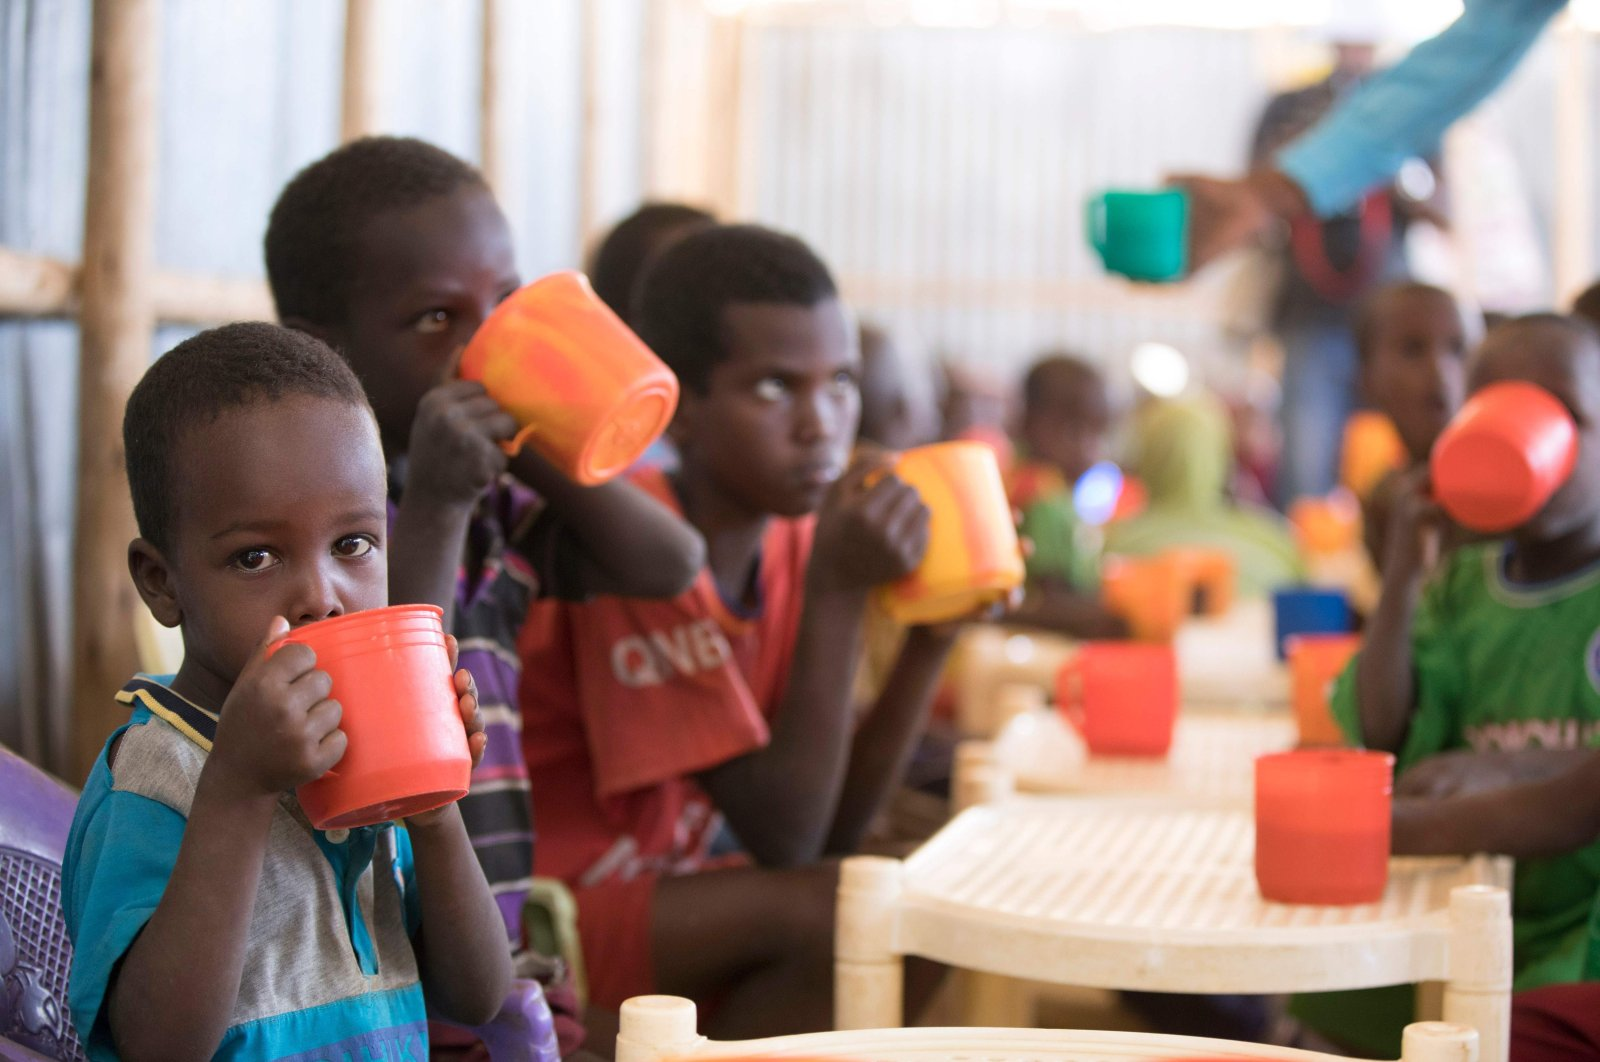 Young children drink a high protein mix provided by the World Food Programme (WFP) at Mekladida refugee camp in the Somali region of Ethiopia, Dec. 1, 2020. (AFP Photo)